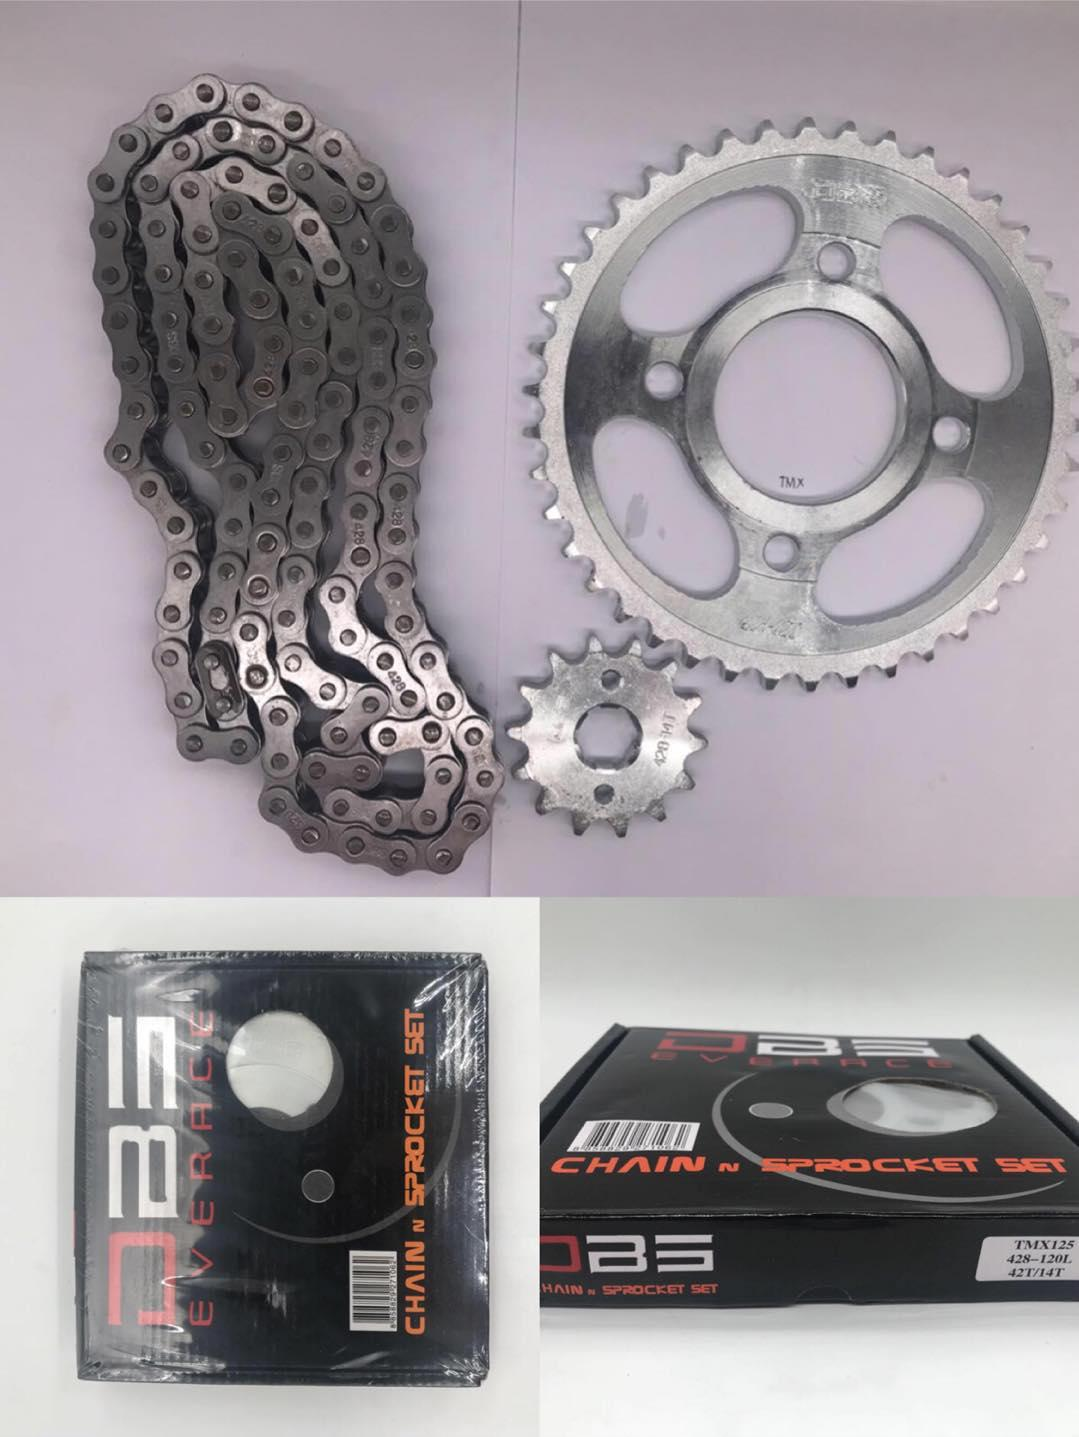 TMX chain and sprocket set 14/45T